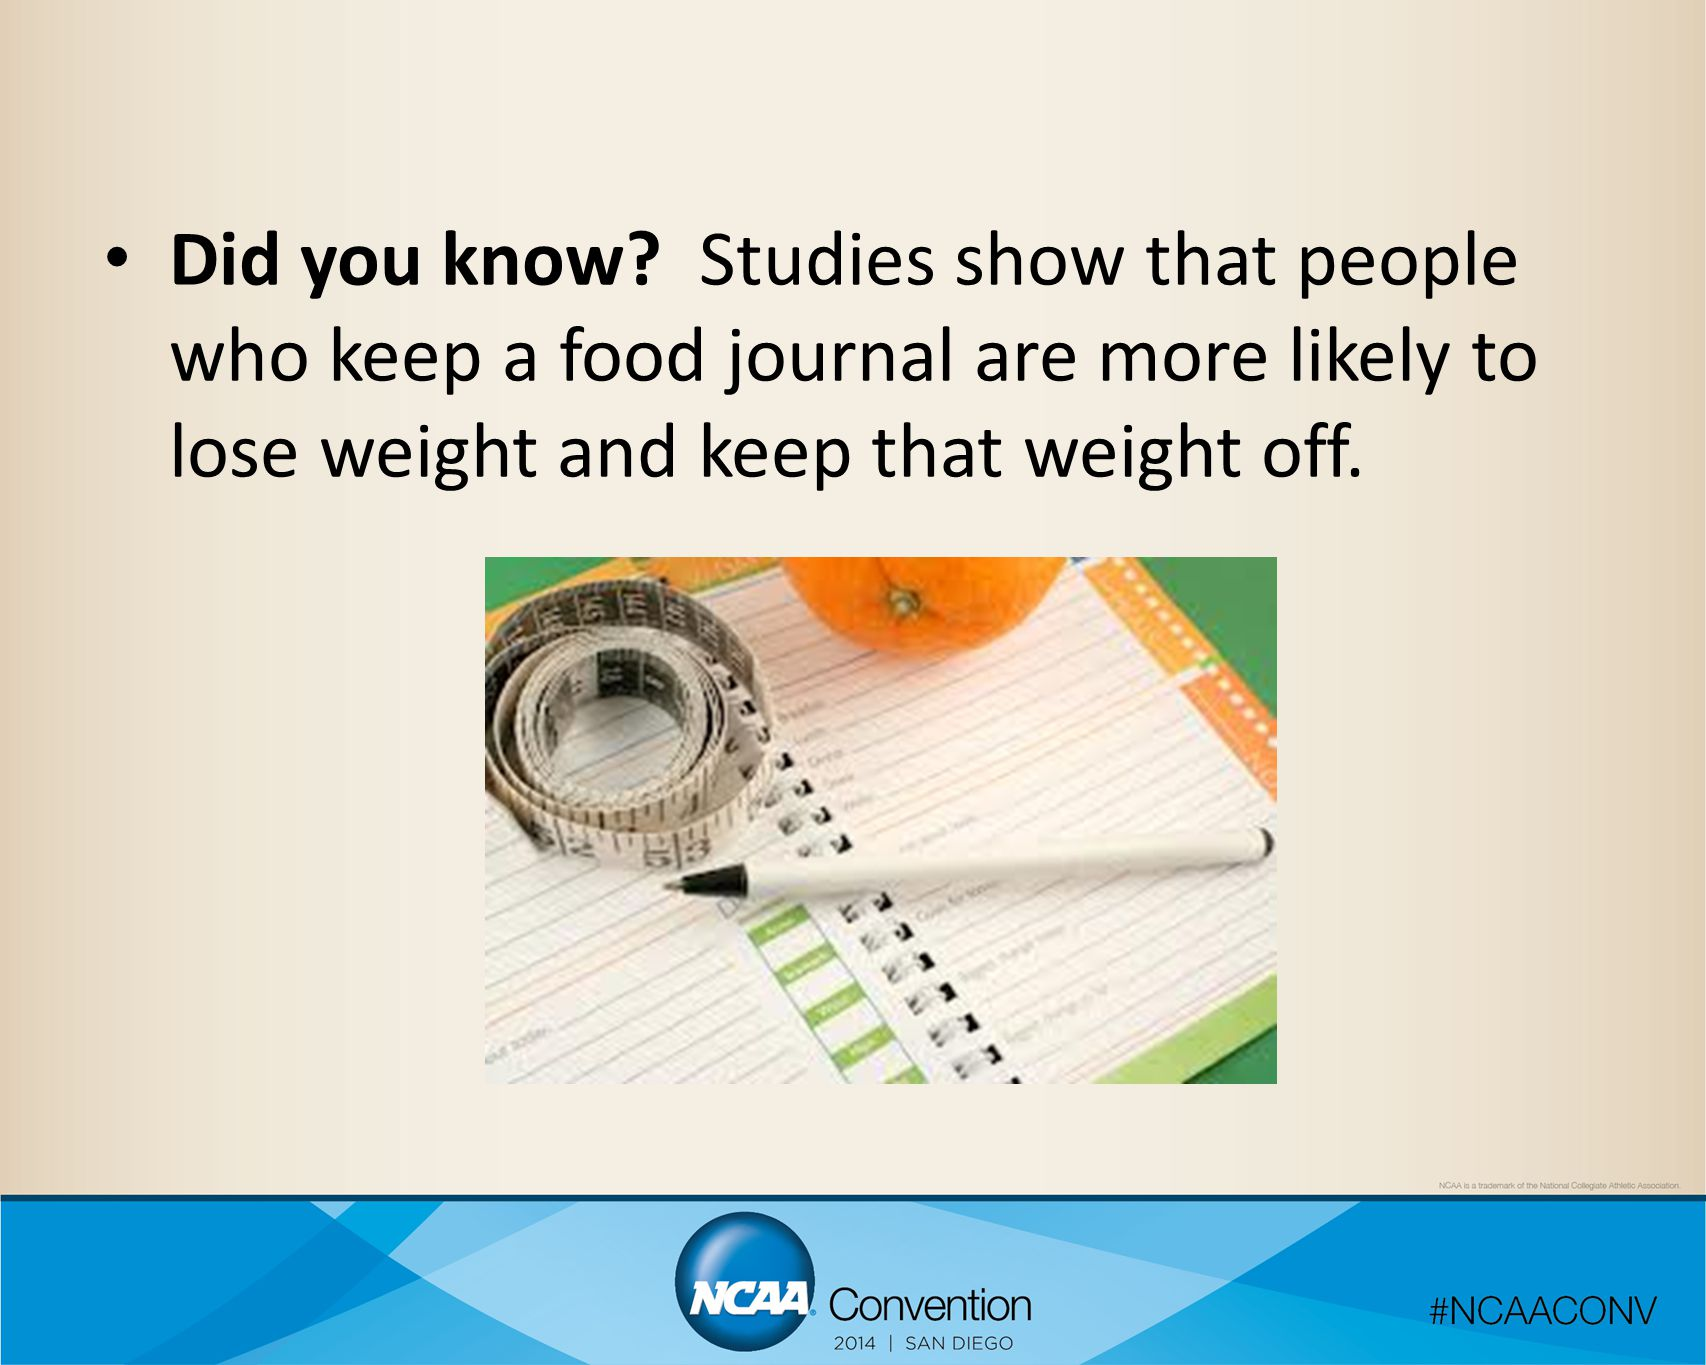 Did you know? Studies show that people who keep a food journal are more likely to lose weight and keep that weight off.